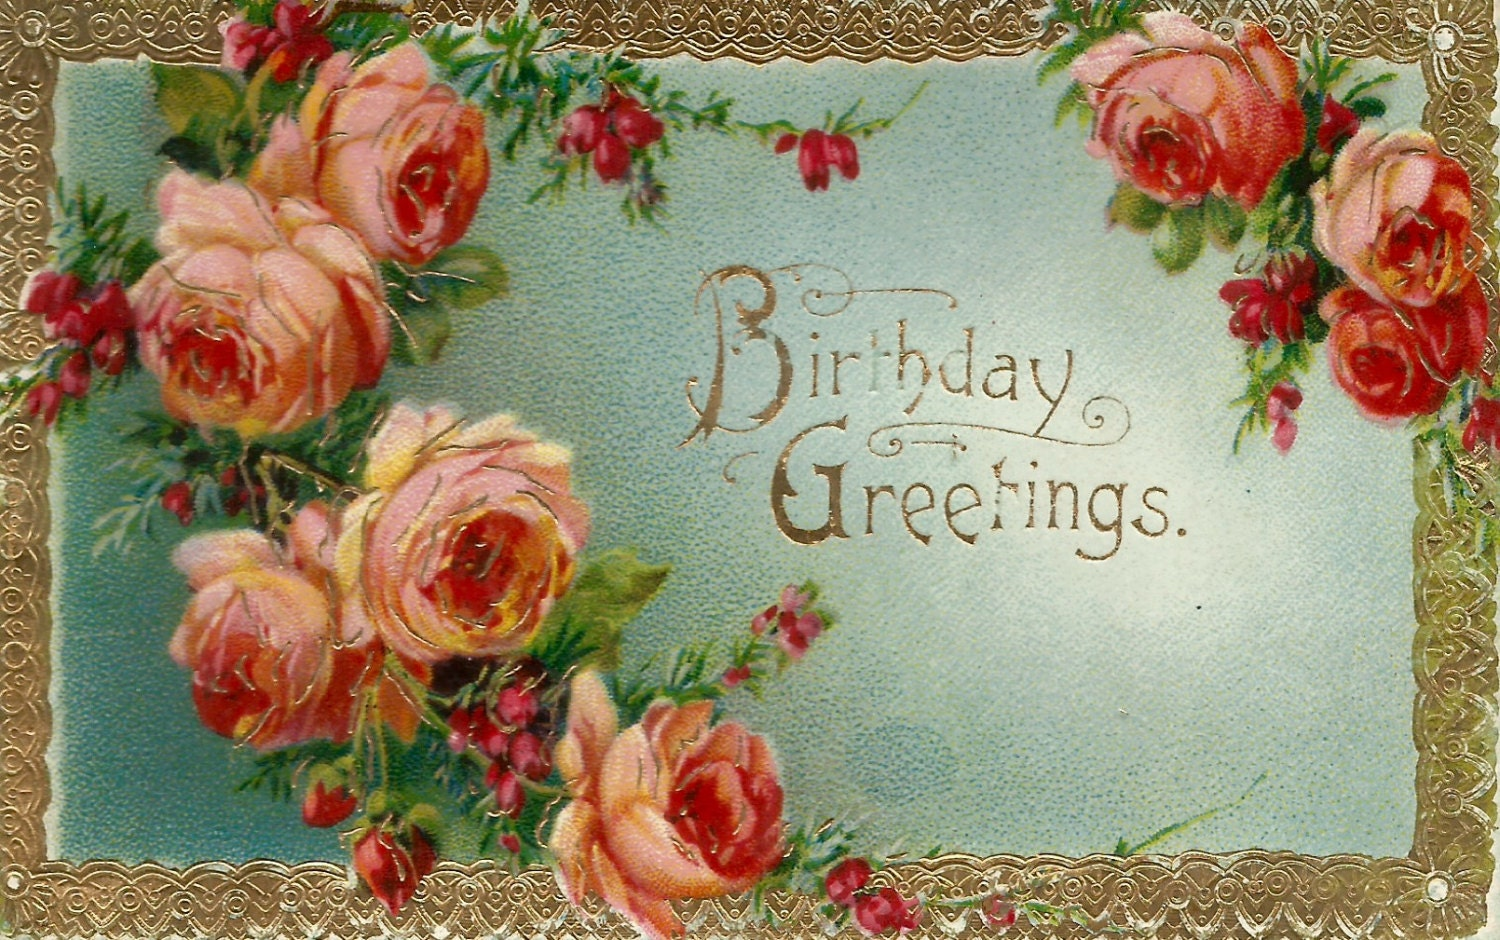 Vintage Floral Roses Birthday Greetings Postcard Digital Etsy